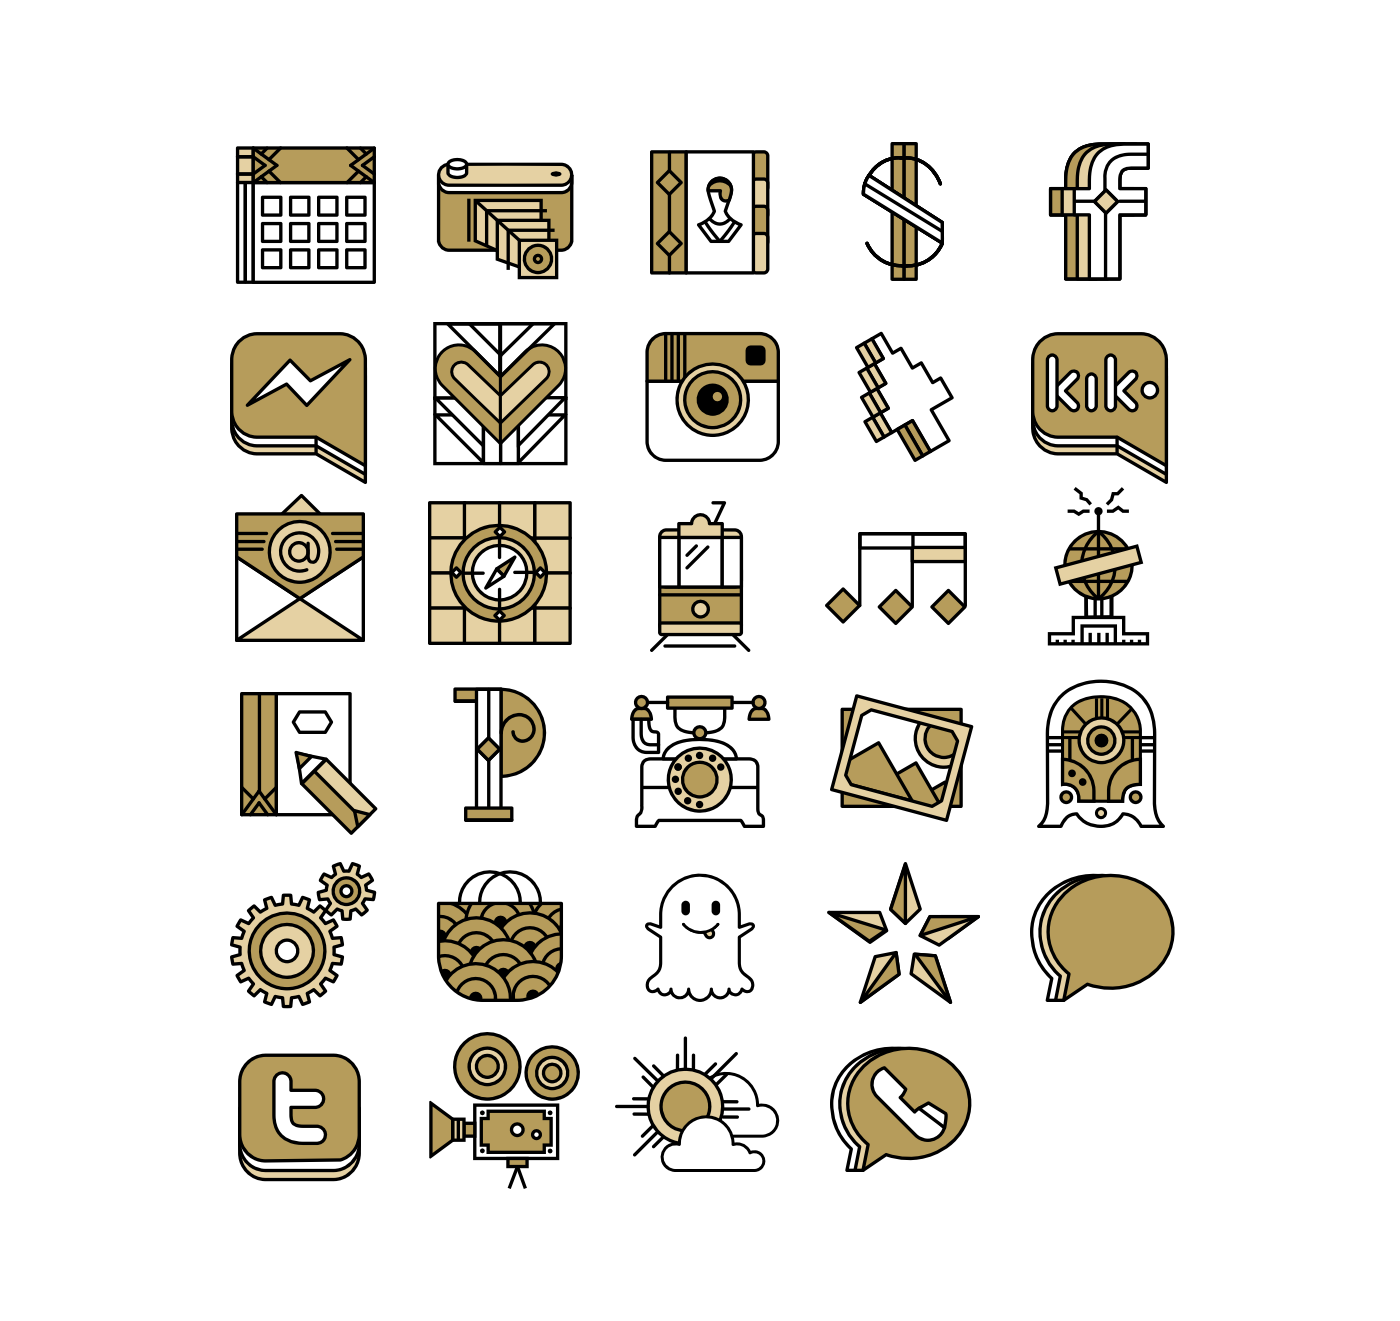 We Have Been Commissioned A Series Of Icon Sets To Style Your Mobile Desktop We Invited Ana Types Type As Our Guest Illustra Mobile Icon Icon Set Desktop Icons